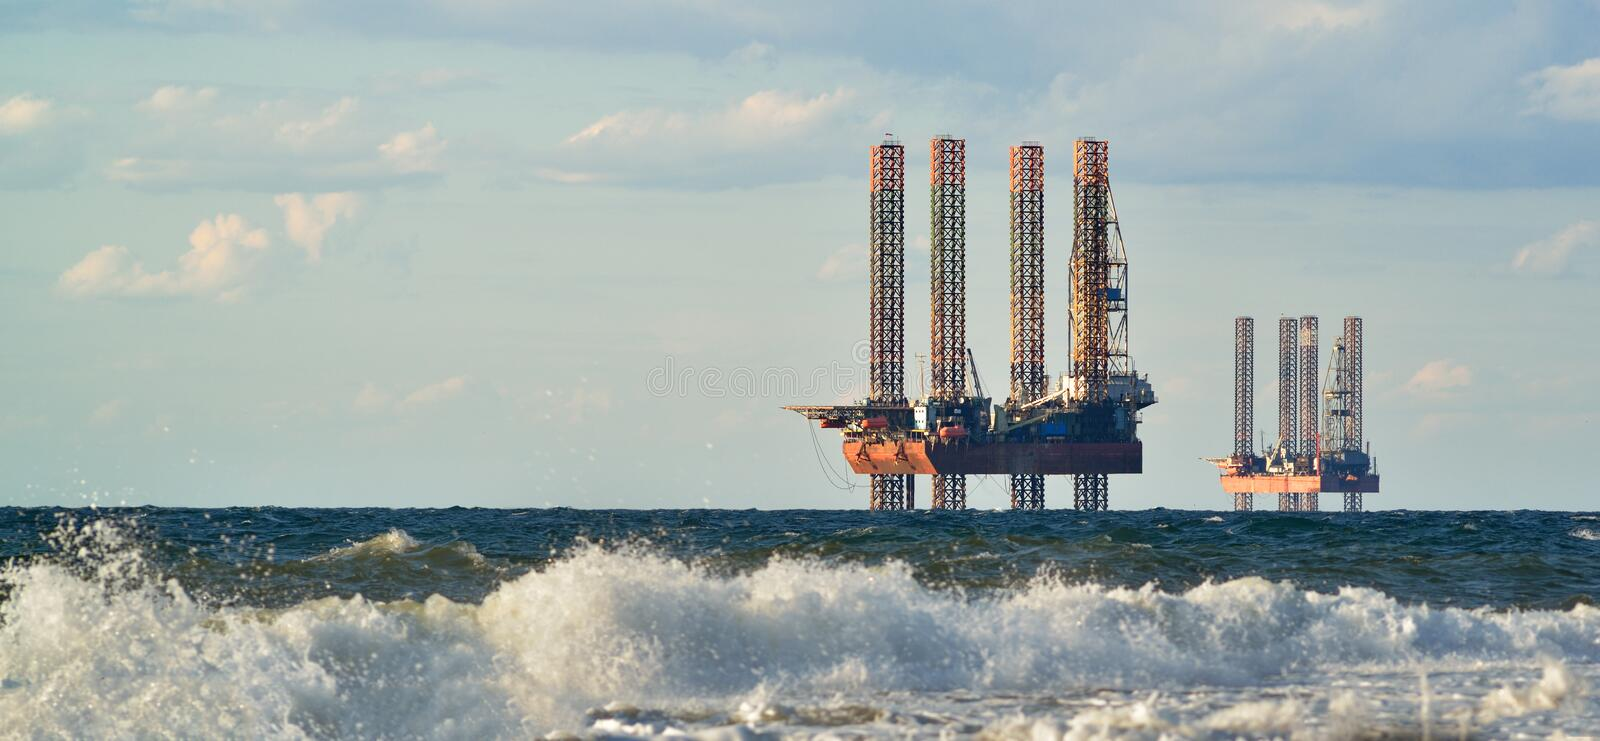 Sea station of gas production in the sea royalty free stock images